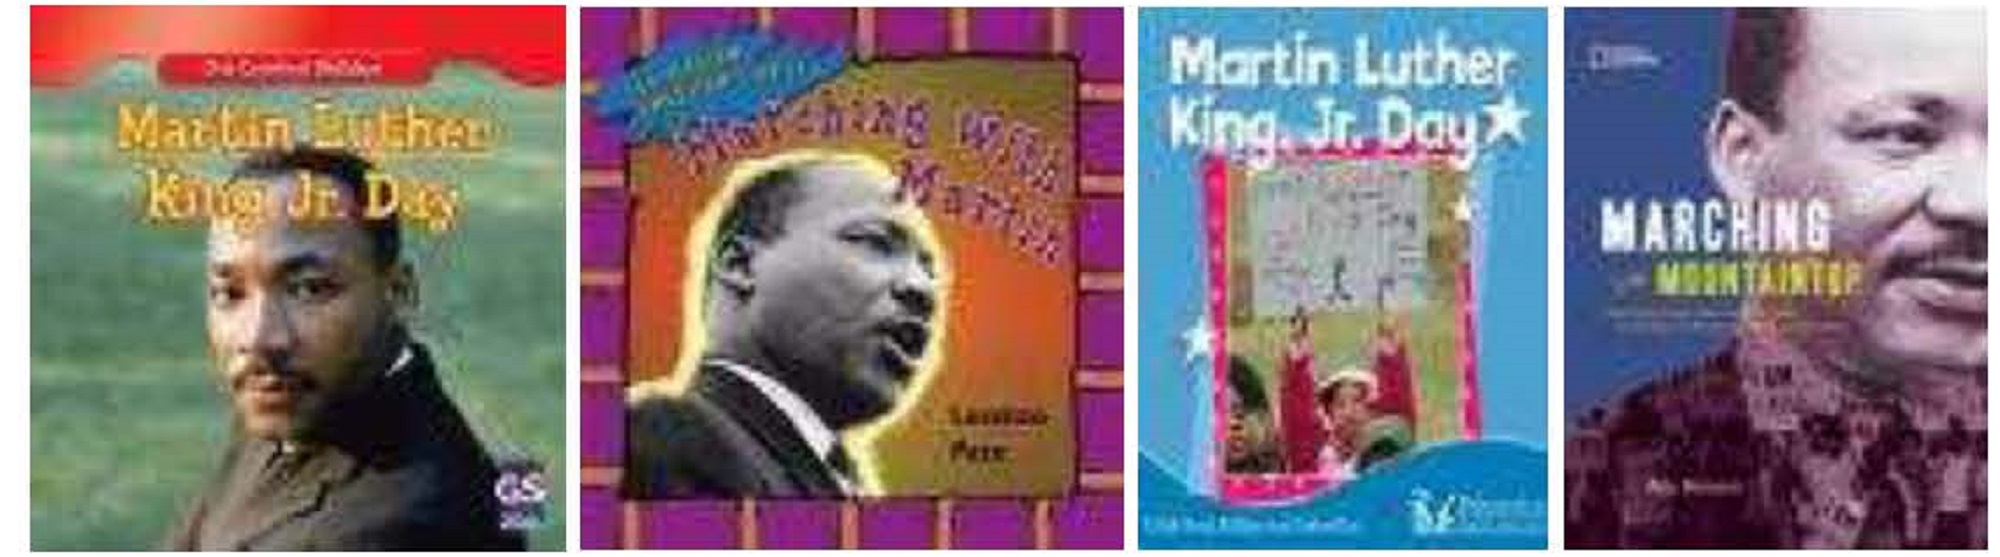 APS eBook Shelf Offers Several Works on the Life of Dr  Martin